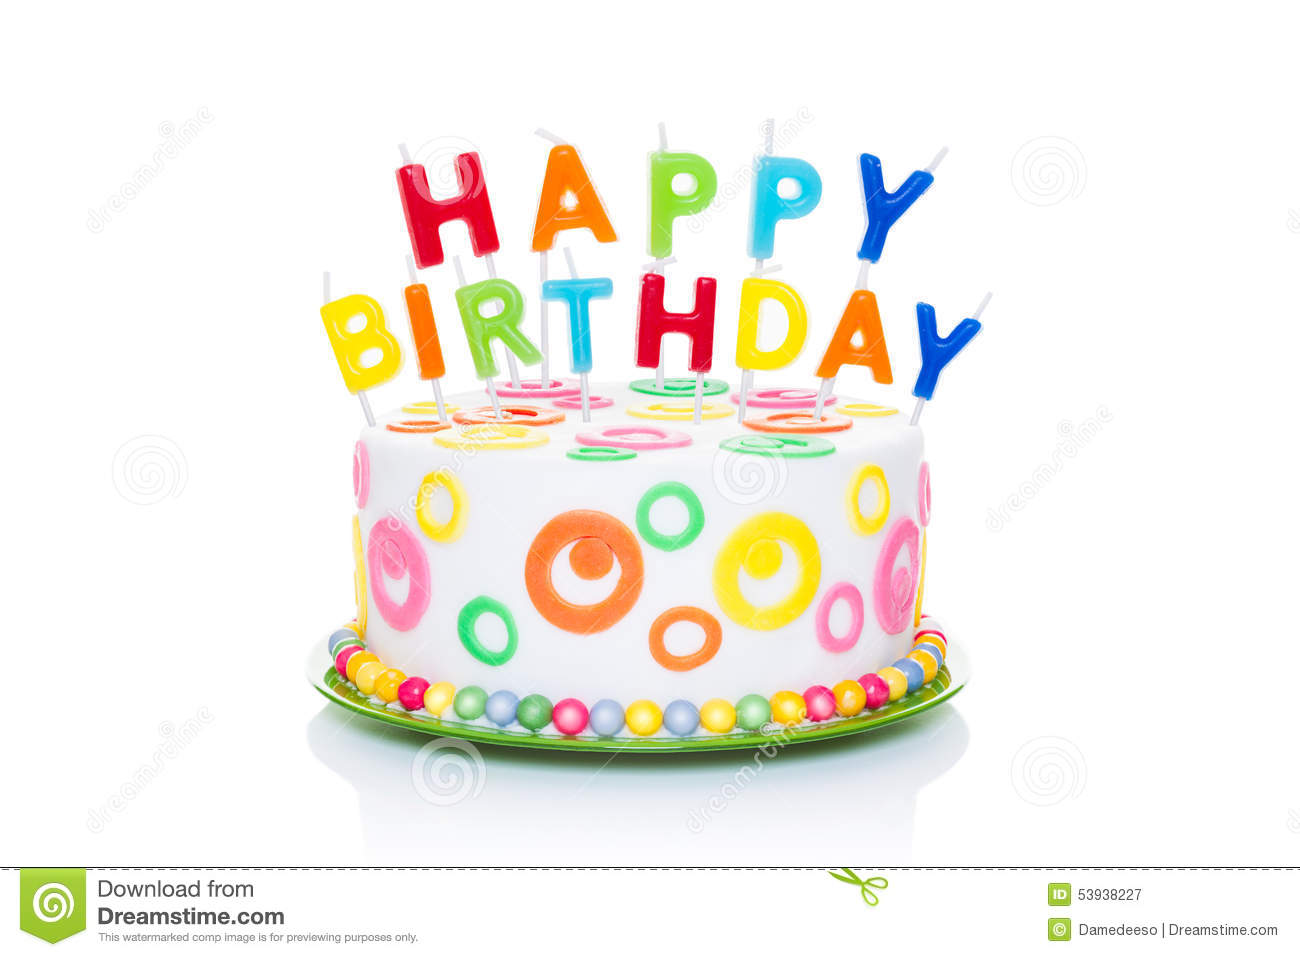 Happy birthday cake stock image. Image of coating, food - 53938227